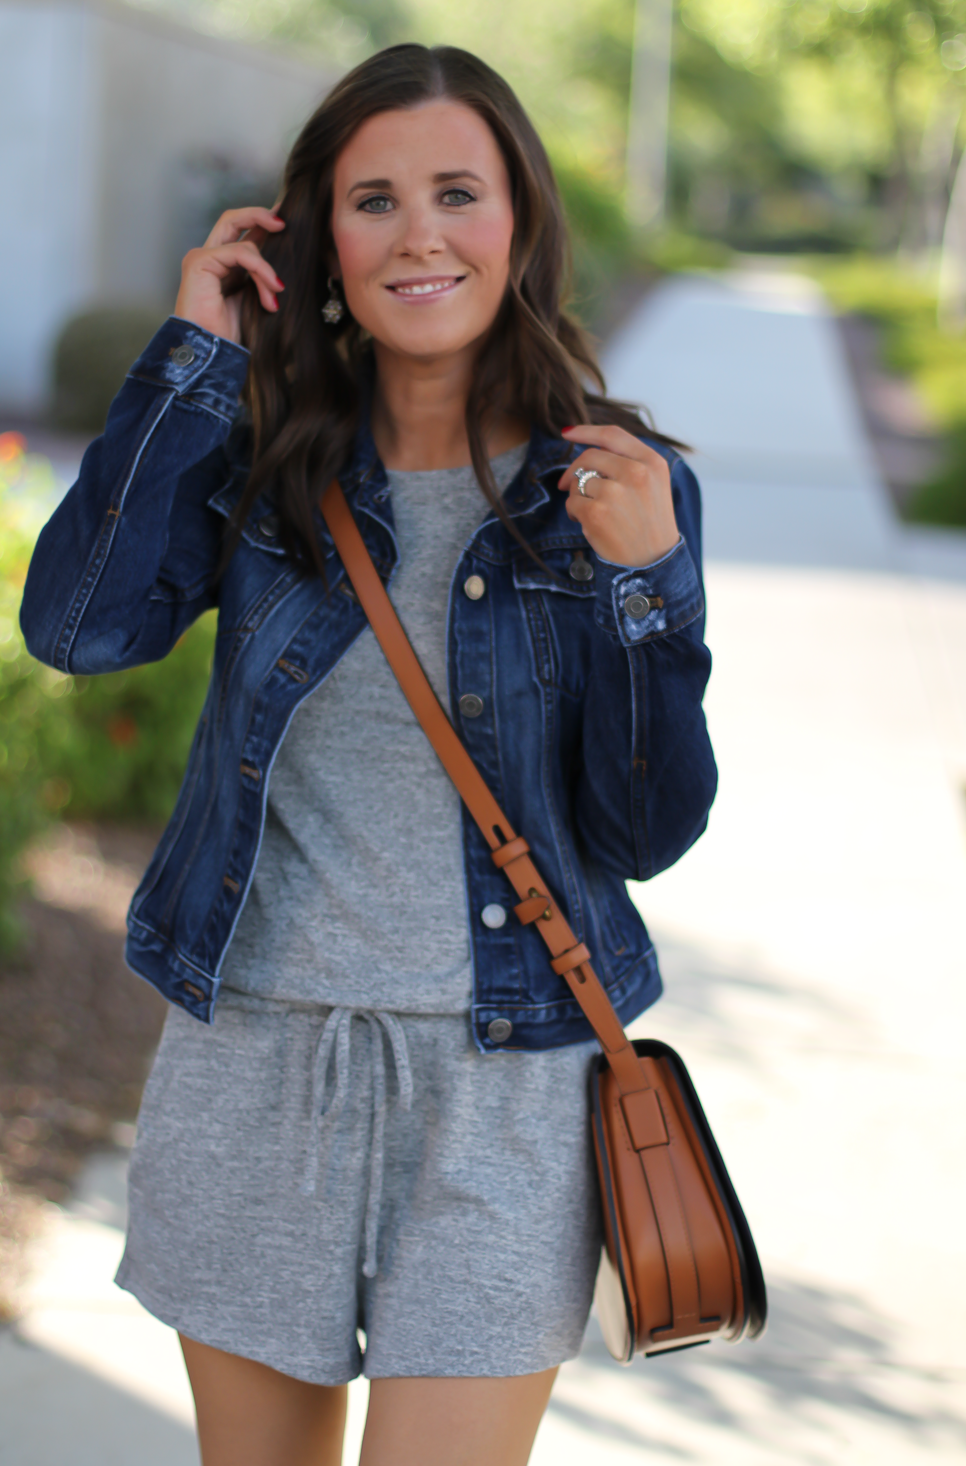 Grey Knit Denim Romper, Denim Jacket, Suede Wedge Sandals, Tan Leather Saddle Bag, Gap, Banana Republic, Chloe, Tory Burch 11